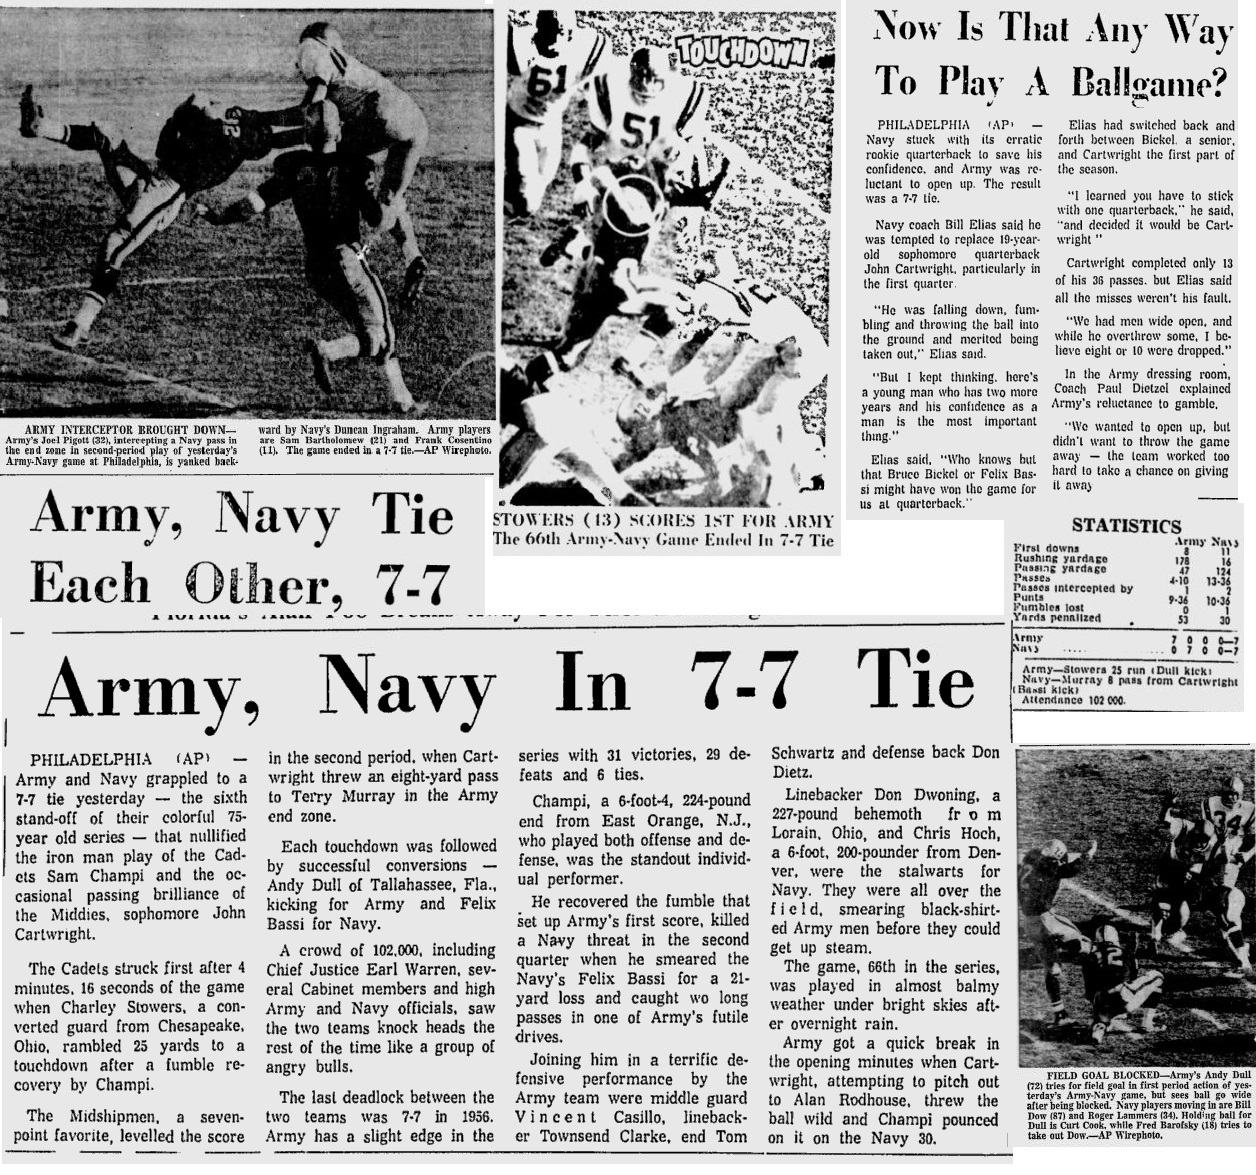 armyfb_1965_vsnavy_themiaminews_nov281965